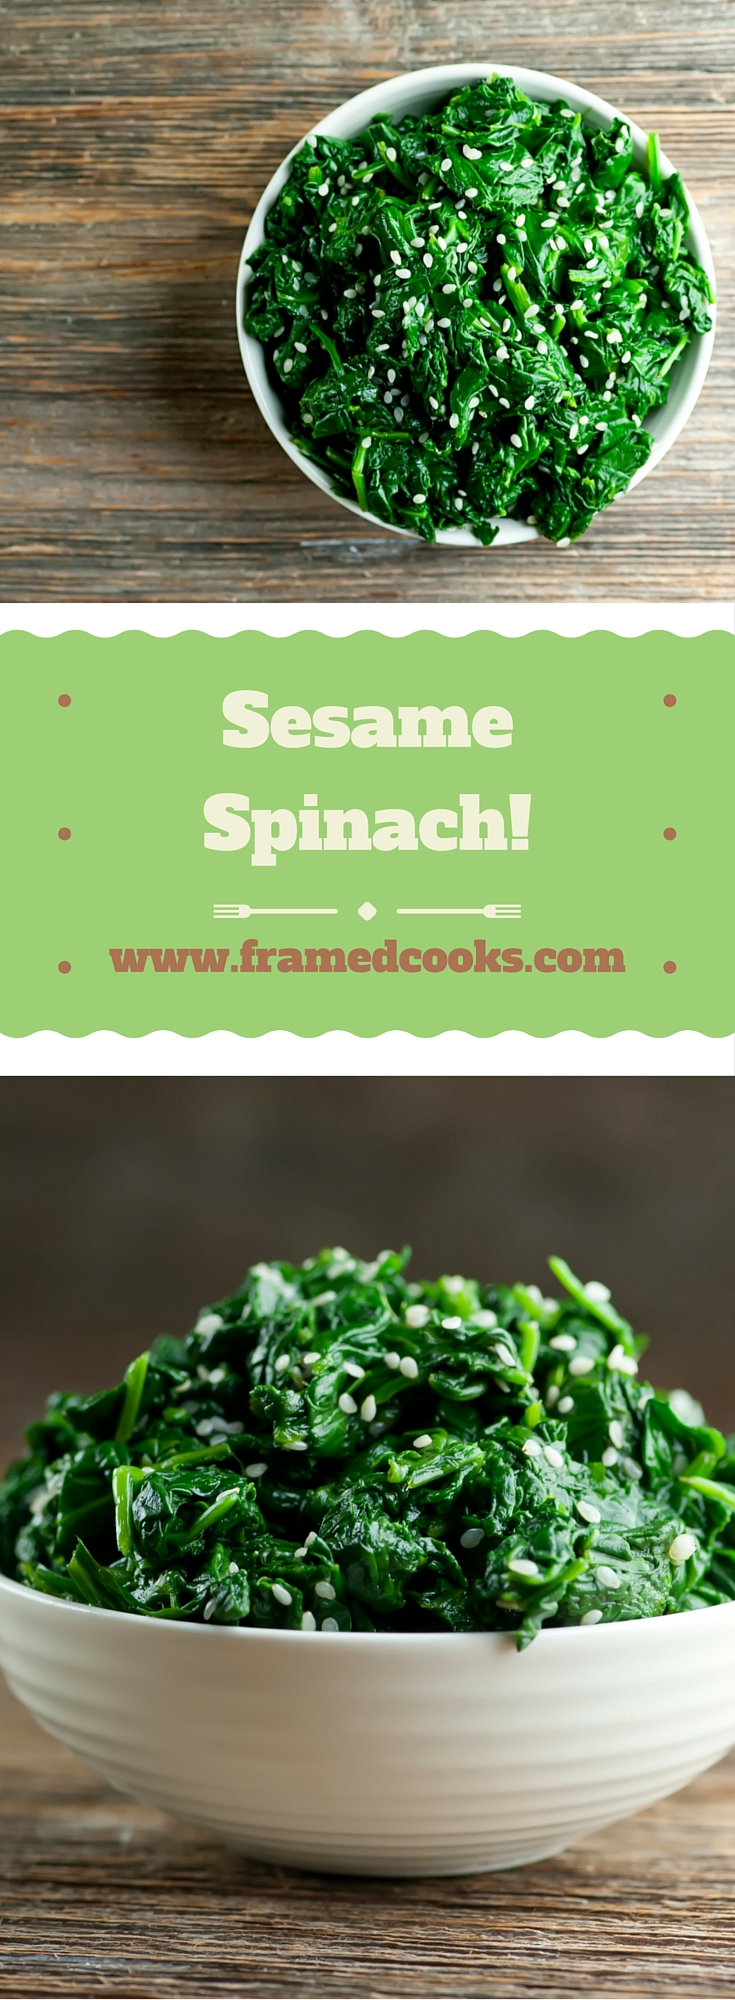 A simple recipe that turns spinach and sesame seeds into the perfect cool summer side dish.